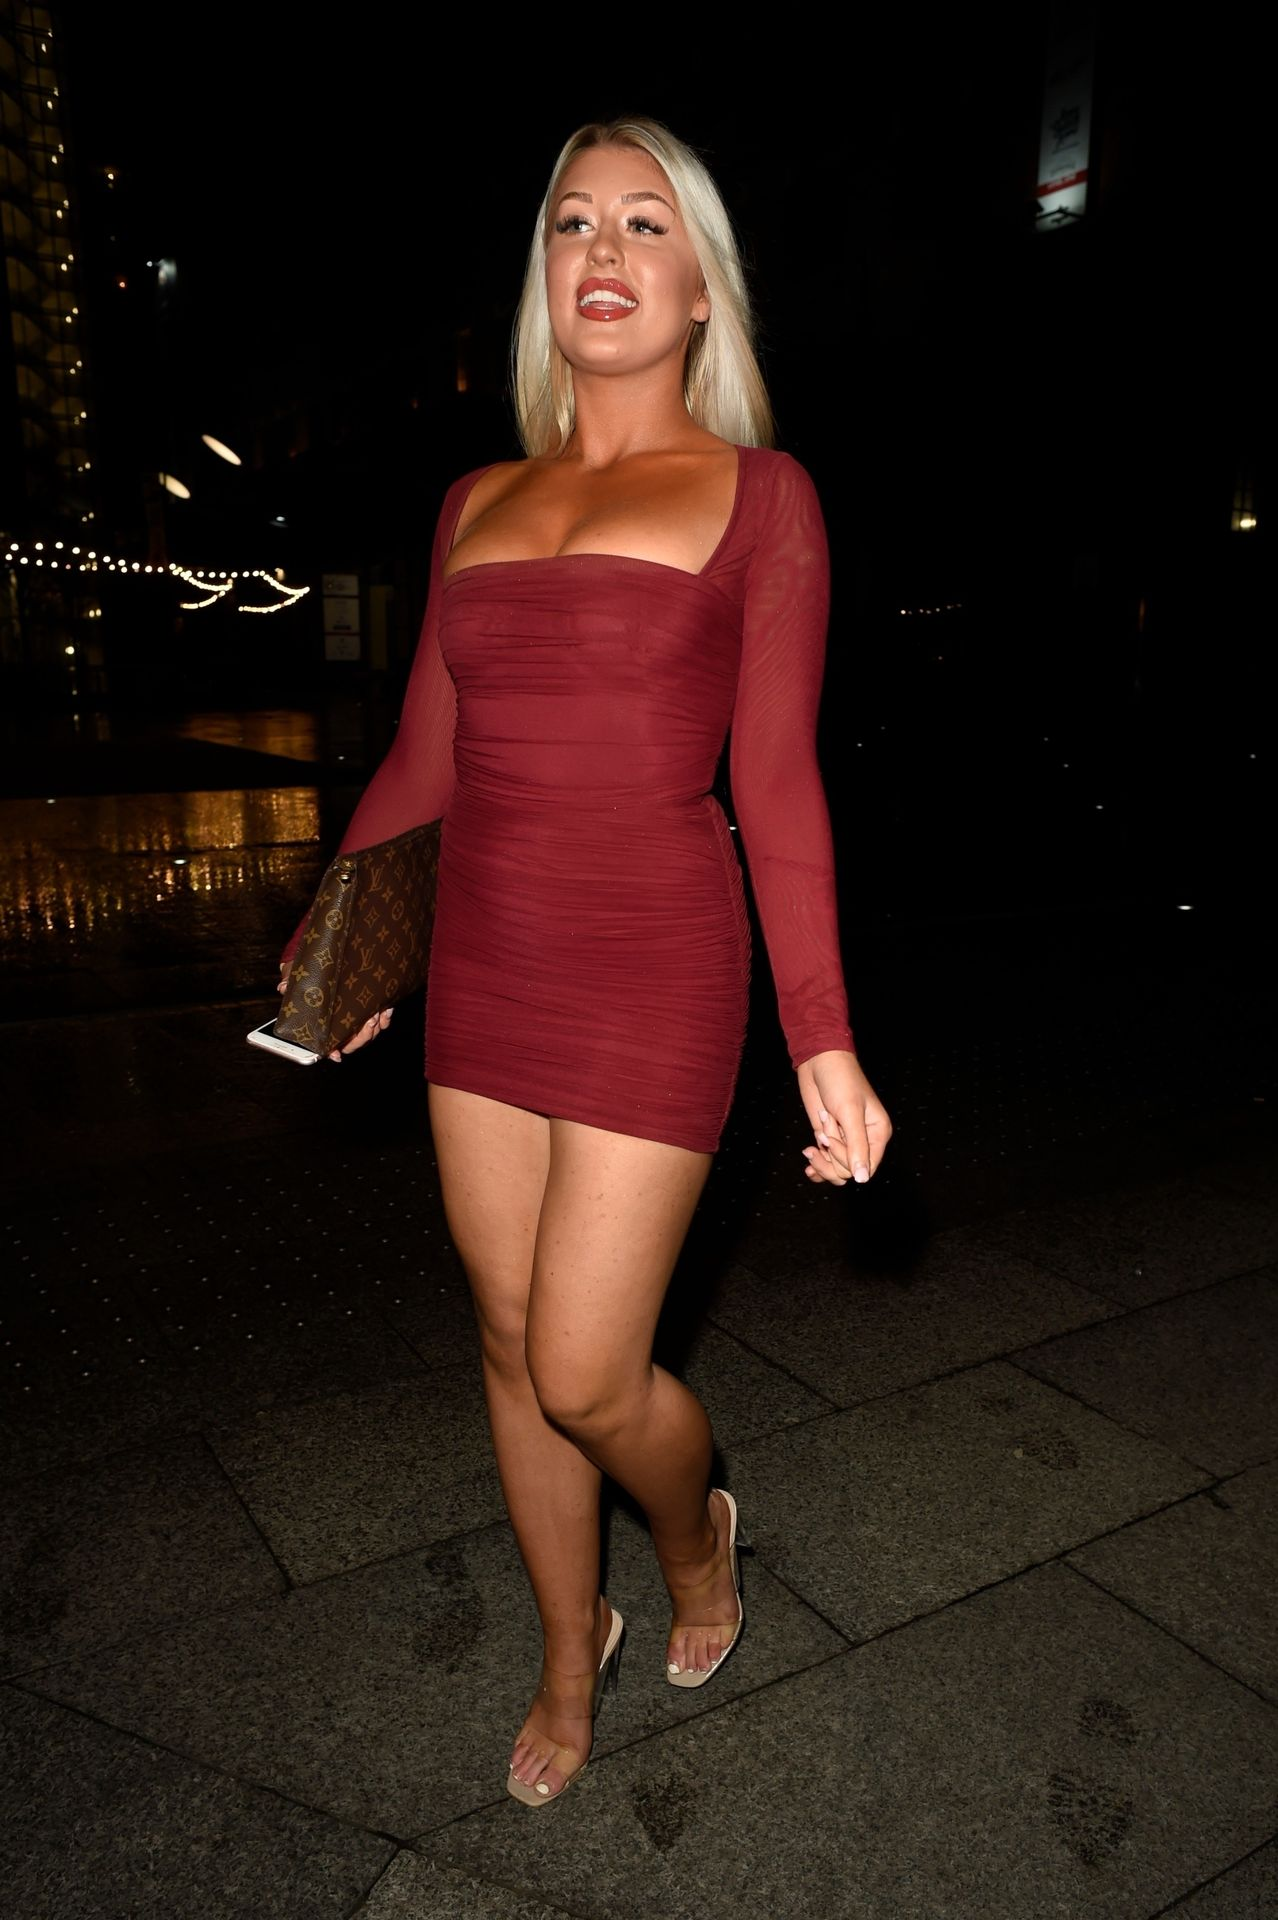 Eve Gale Is Heading To China Whites In Manchester 0009